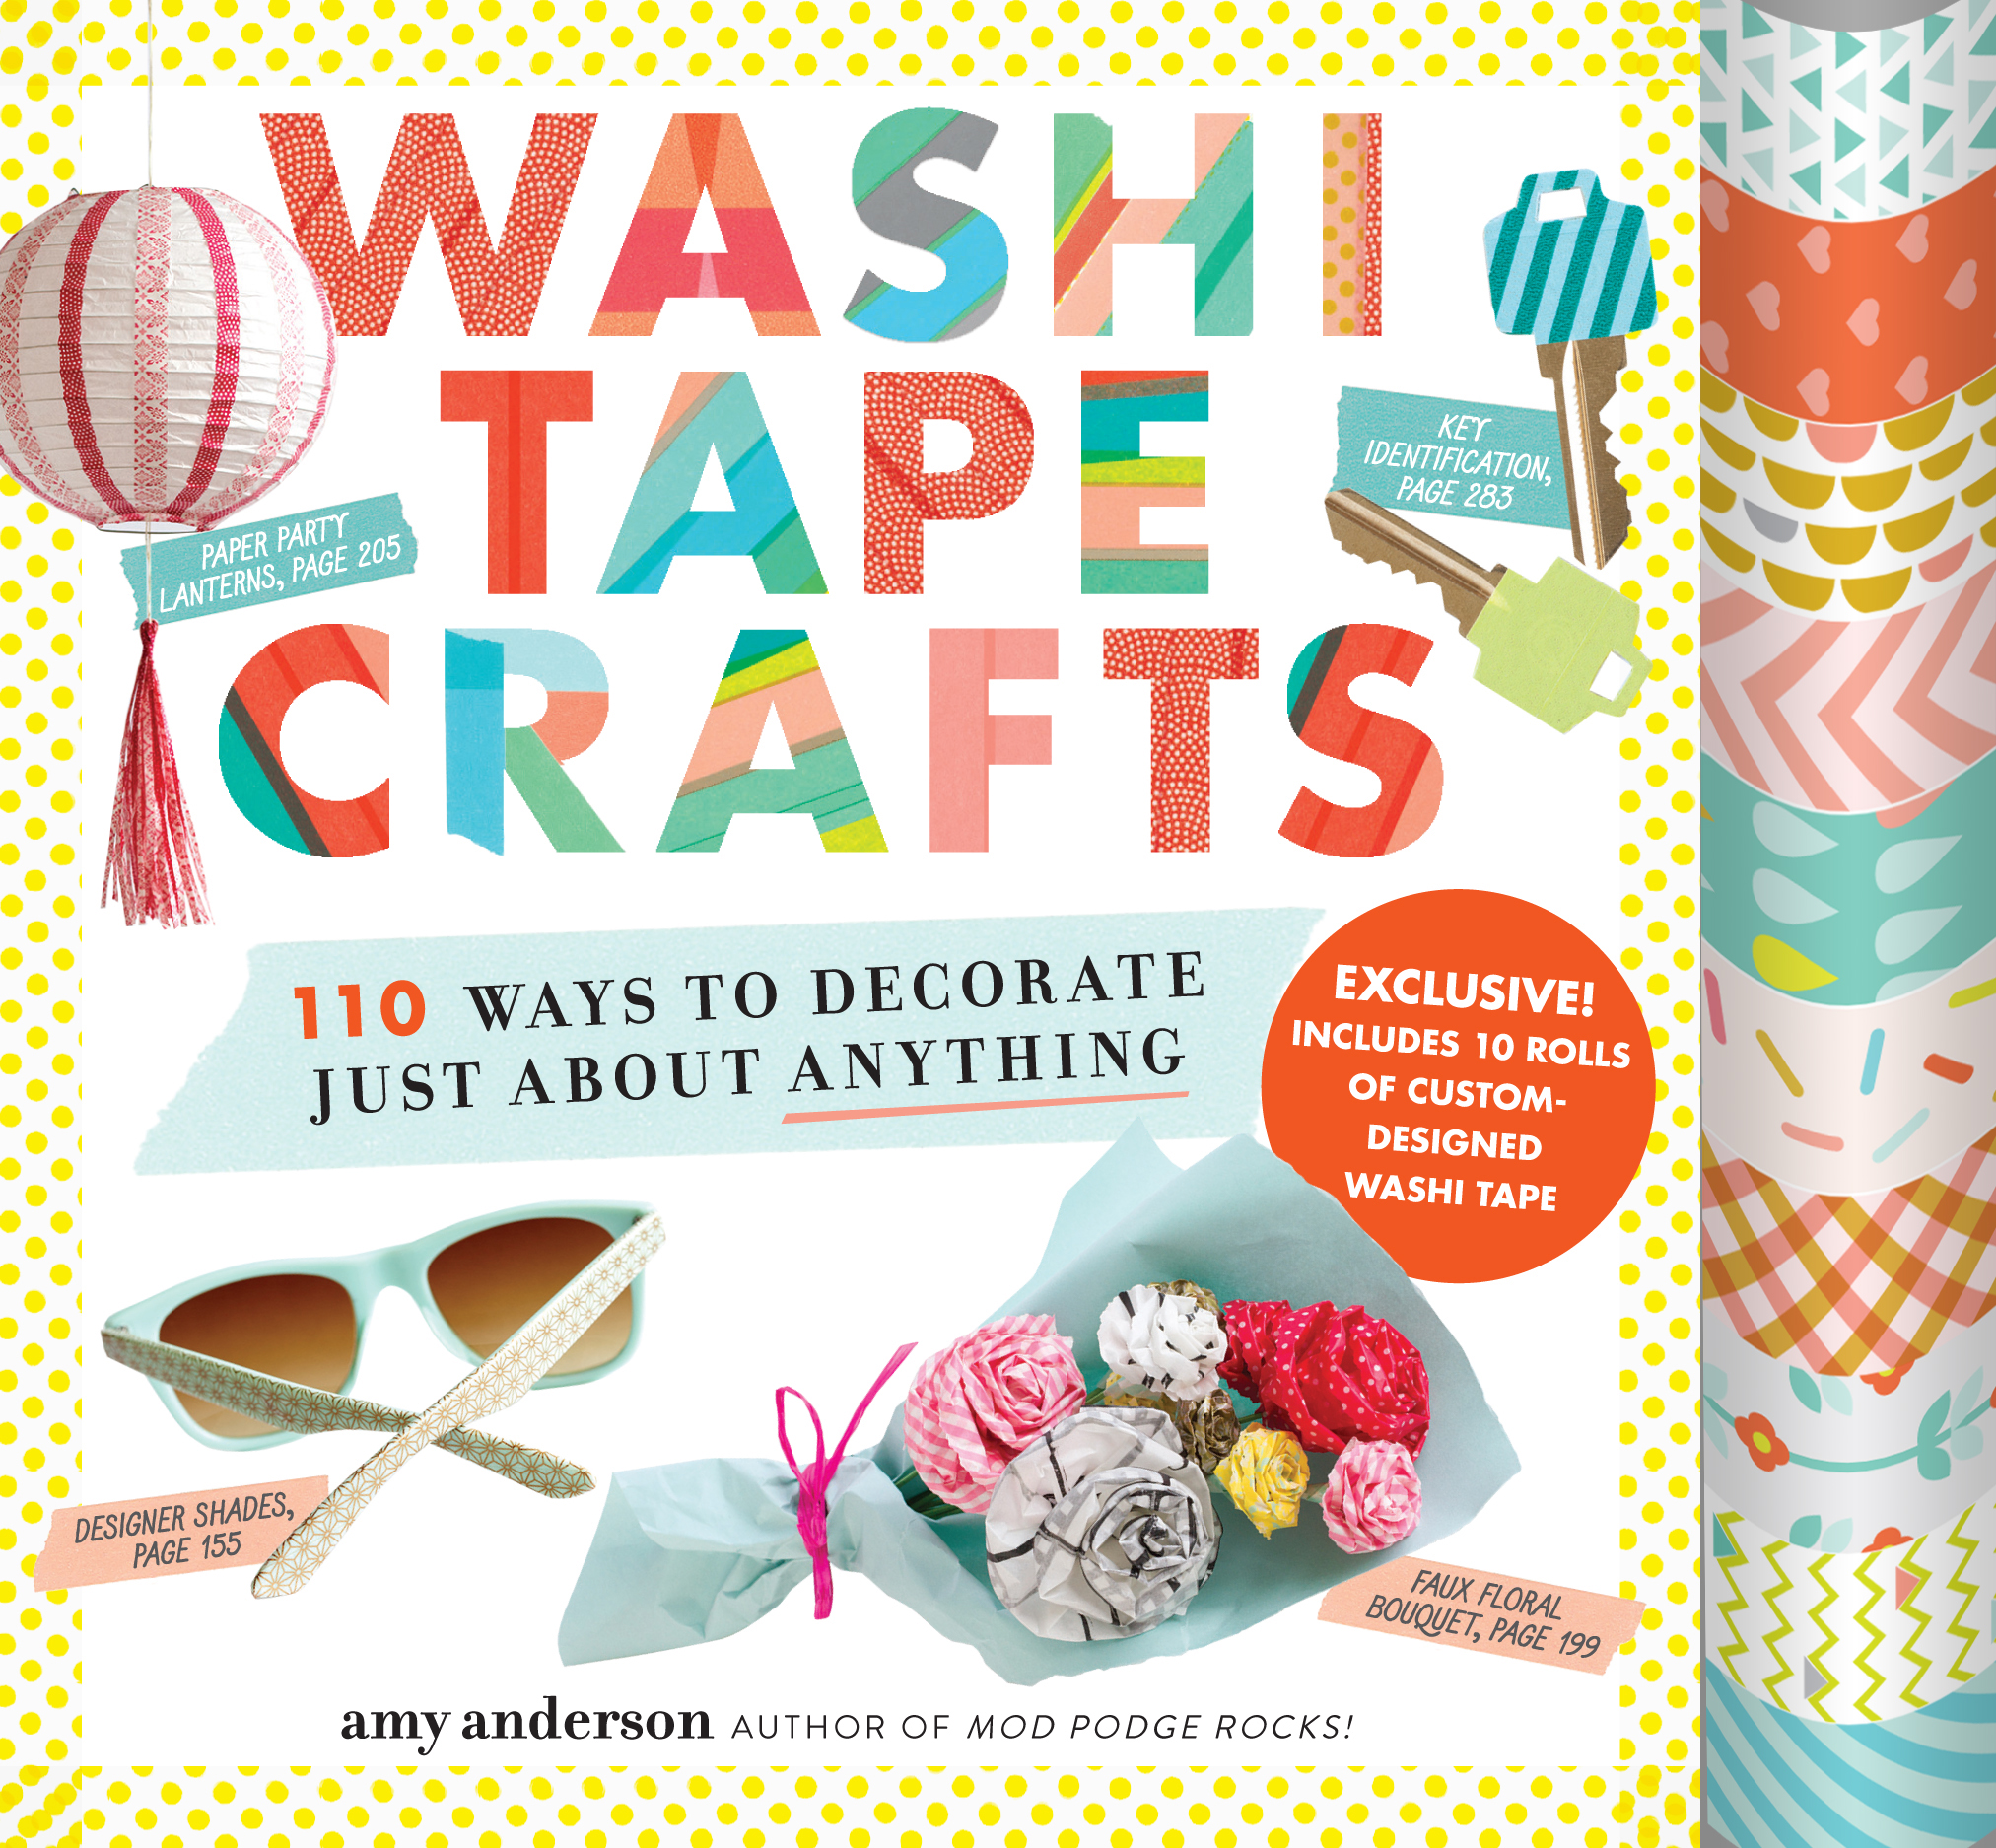 Washi Tale Book Review Washi Tape Crafts Laura K Bray Designs